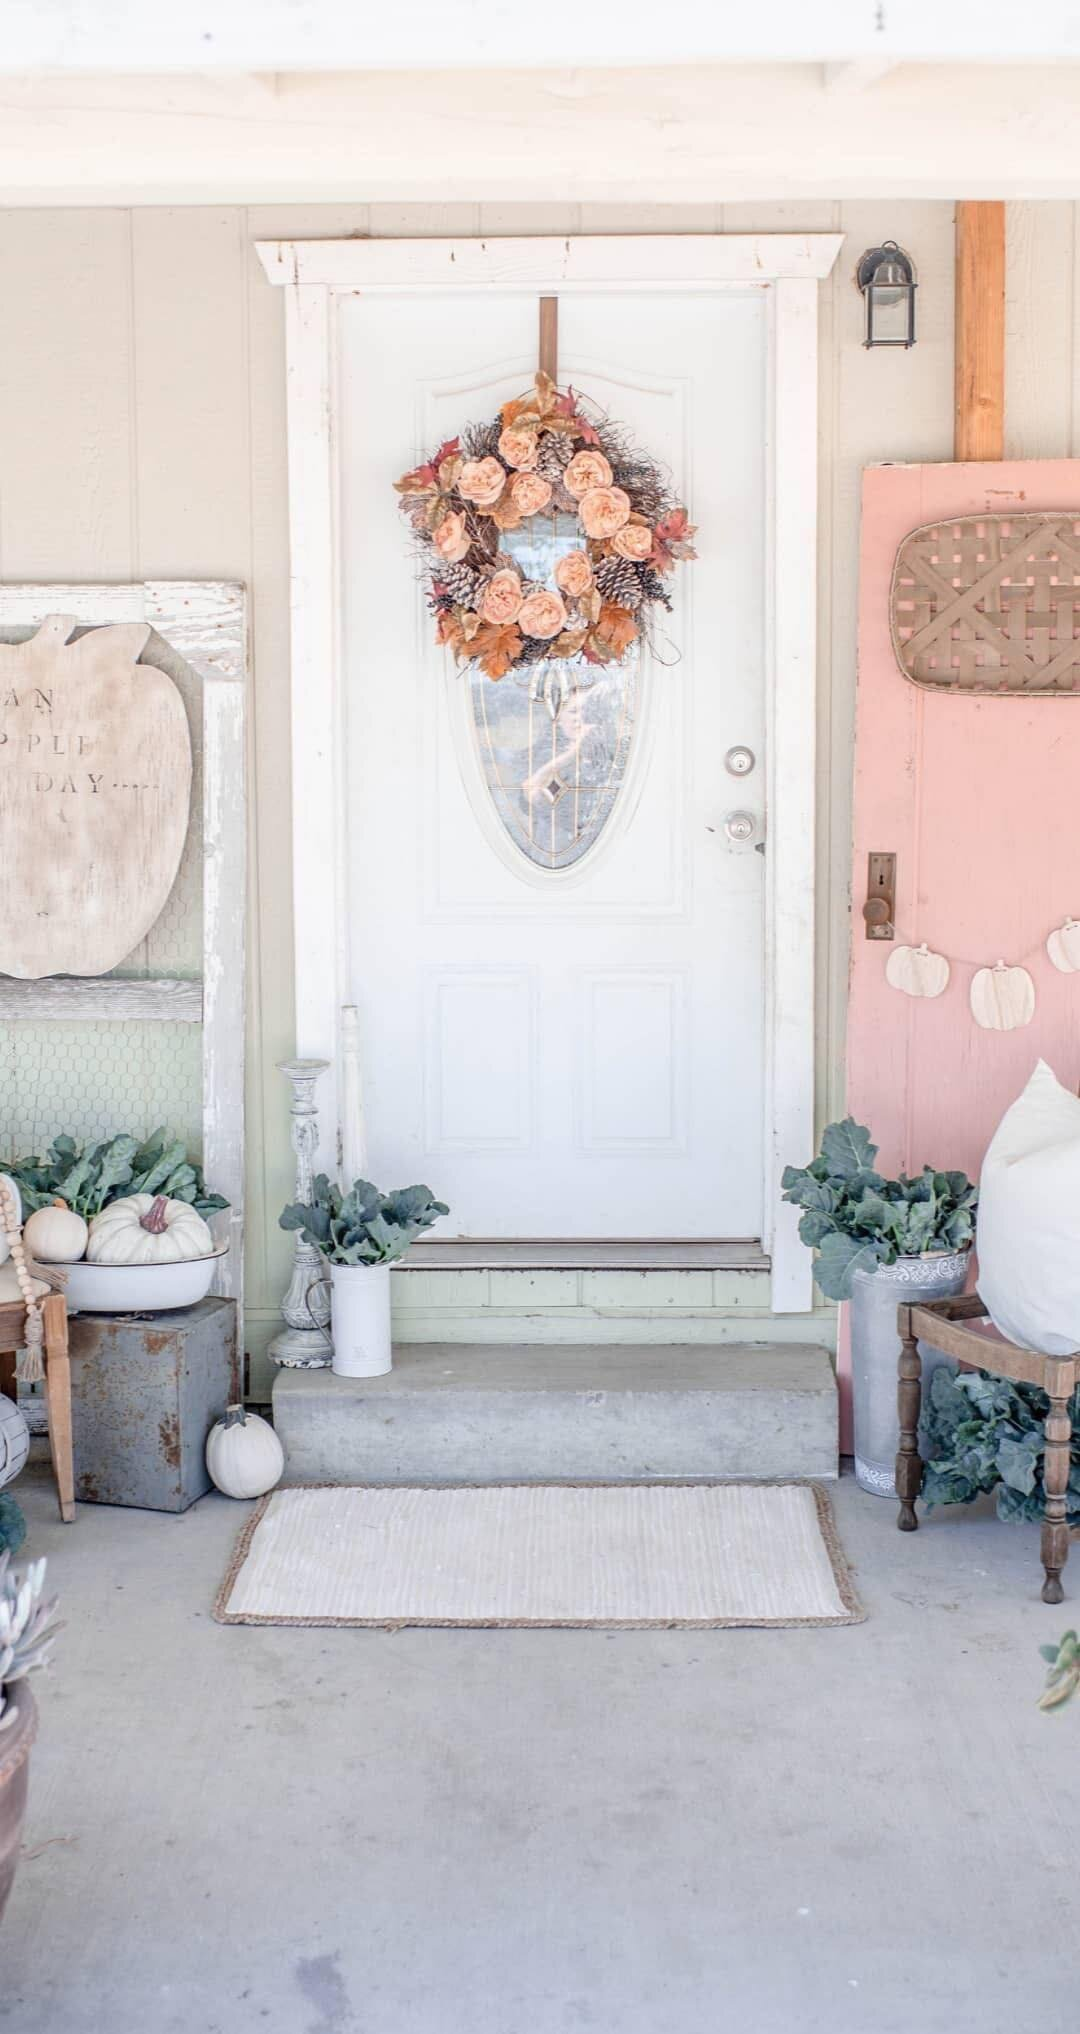 Cory over at Hudson Farmhouse is sharing her pink fall front porch decor. To get more pink fall feels, check out her blog  here